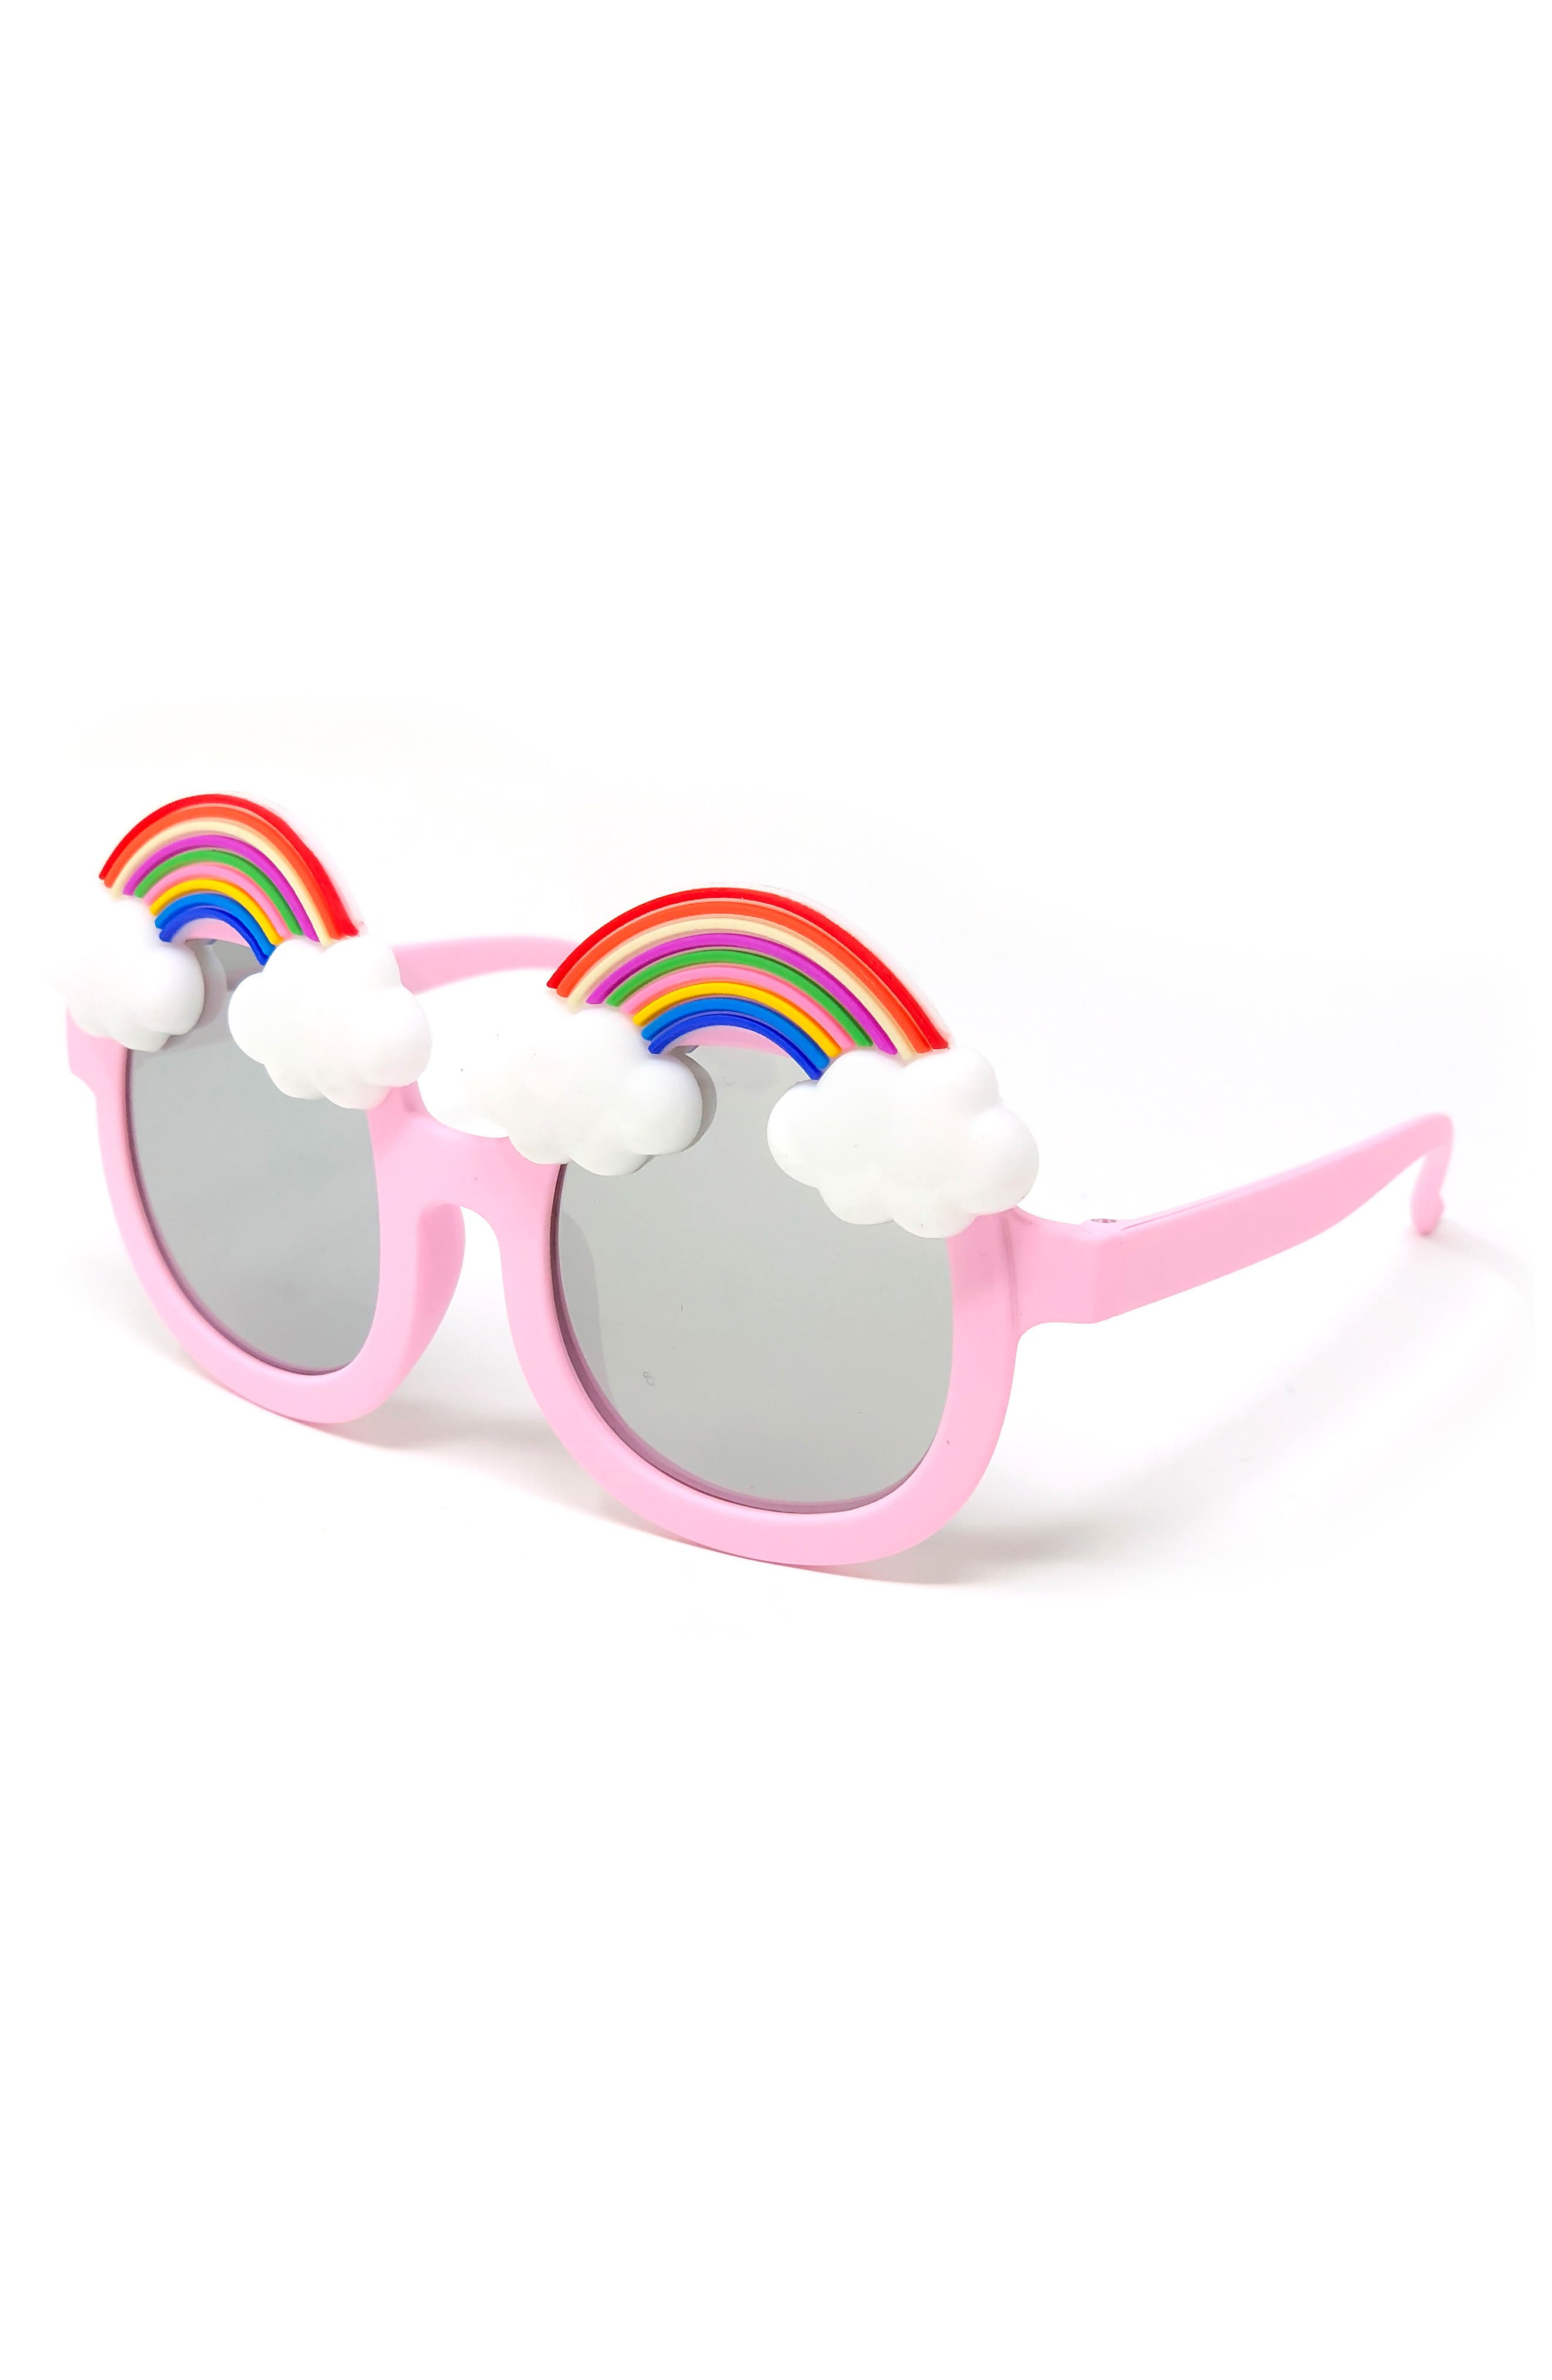 Infant Girls Loose Leaf Eyewear Rainbow Mirrored Sunglasses  Pink